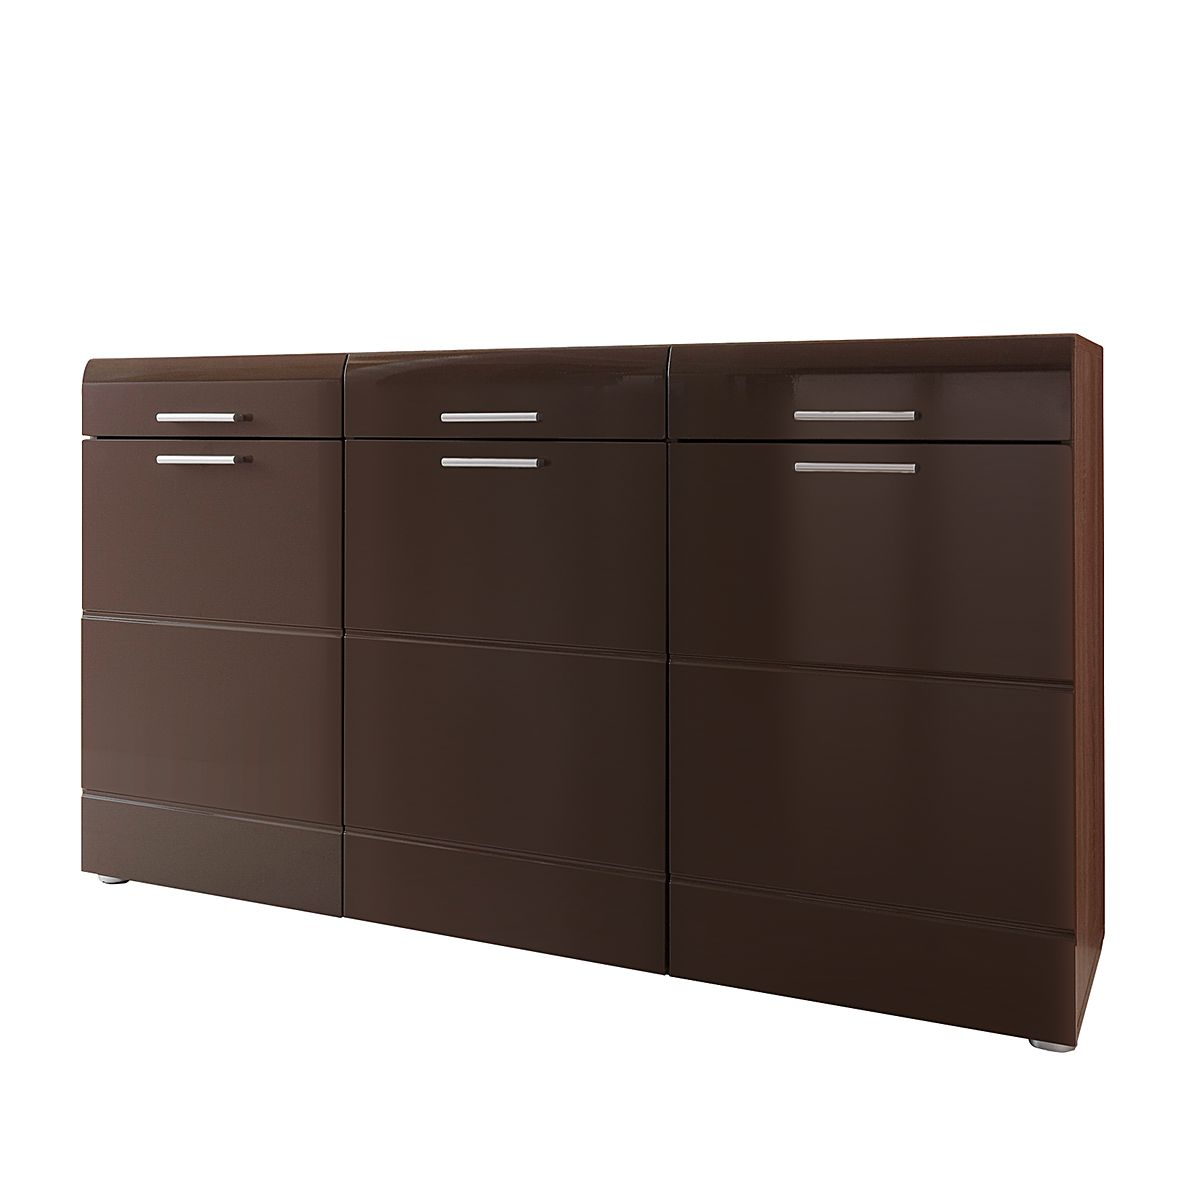 sideboard bilbao eiche tr ffel hochglanz schwarzbraun. Black Bedroom Furniture Sets. Home Design Ideas